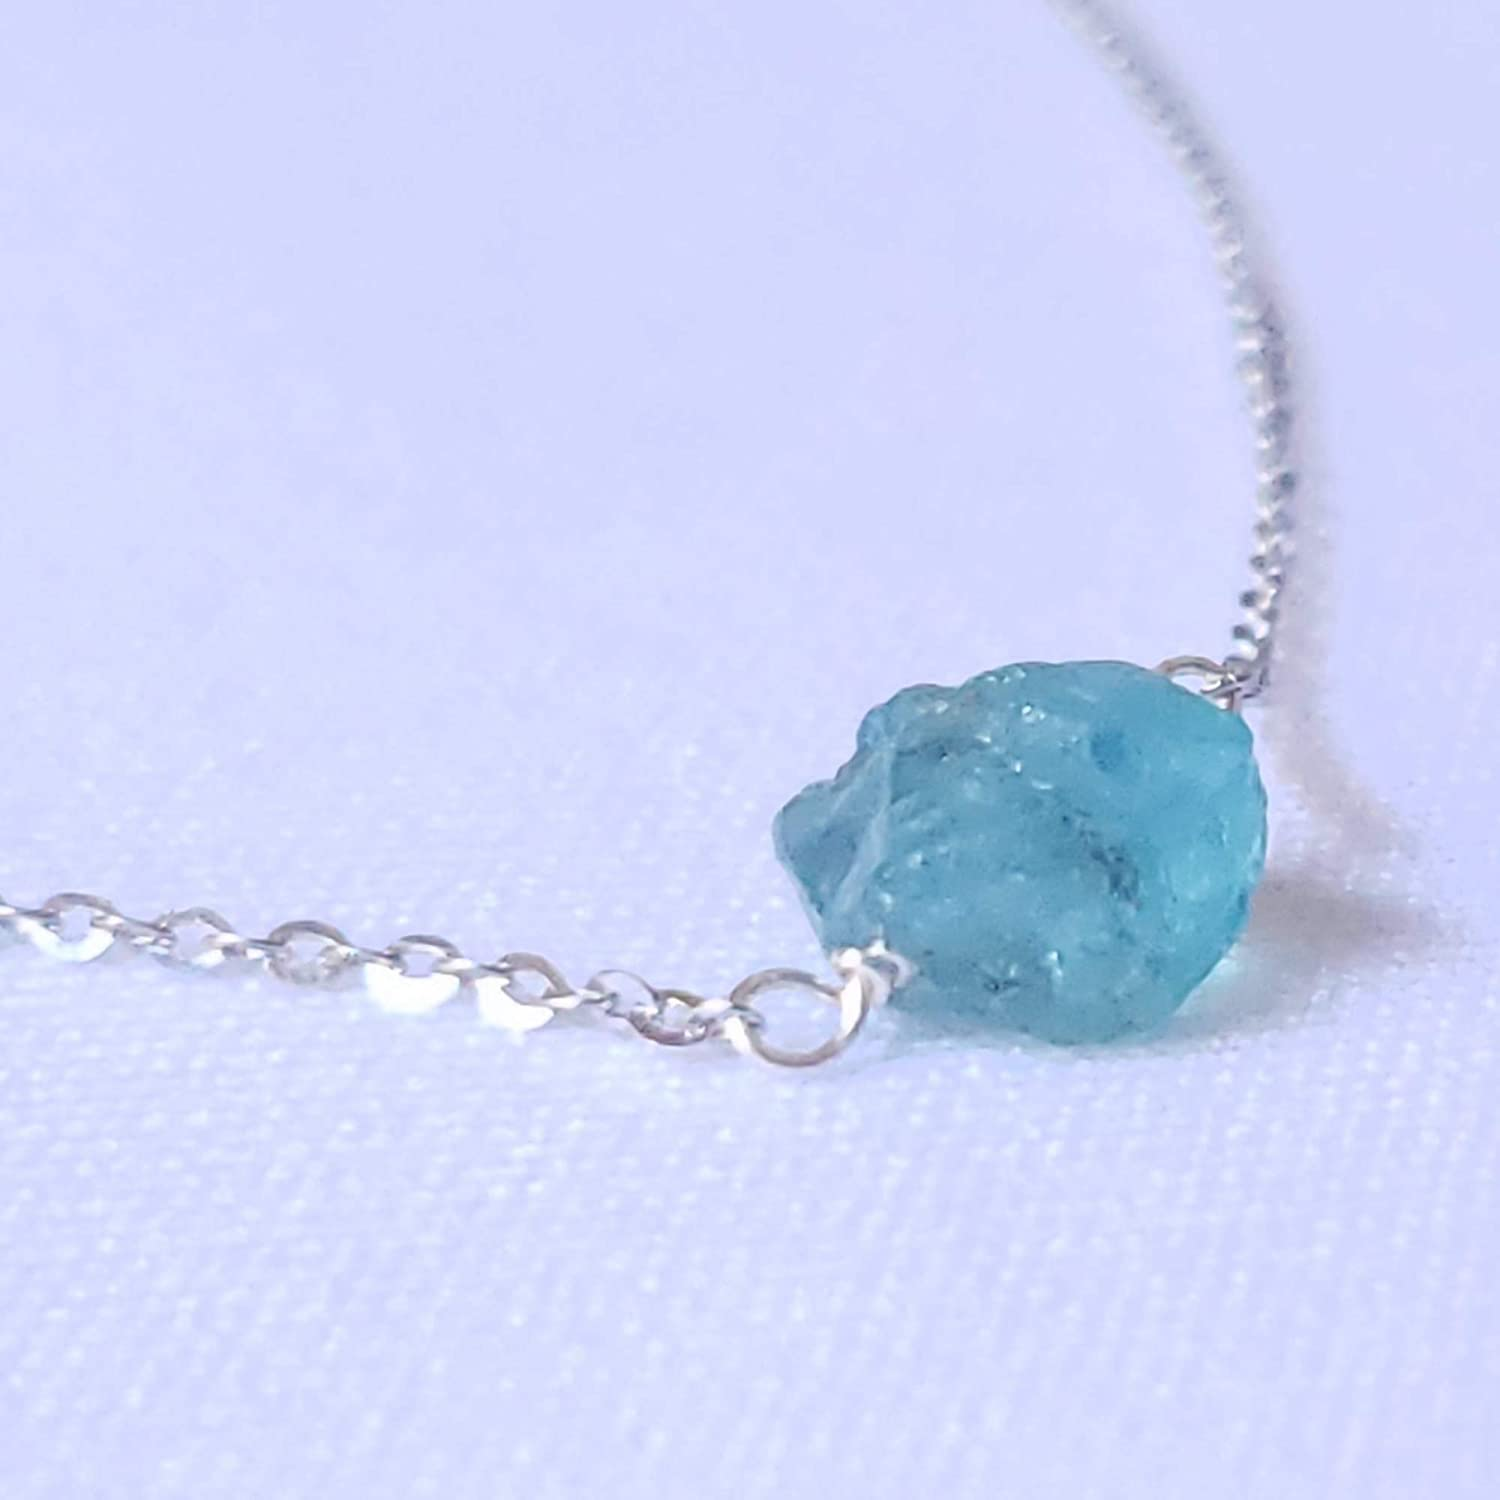 Blue Apatite Charm Necklace Handmade Pendant Crystals Boho Jewelry One of a Kind Copper Chain Gemstones